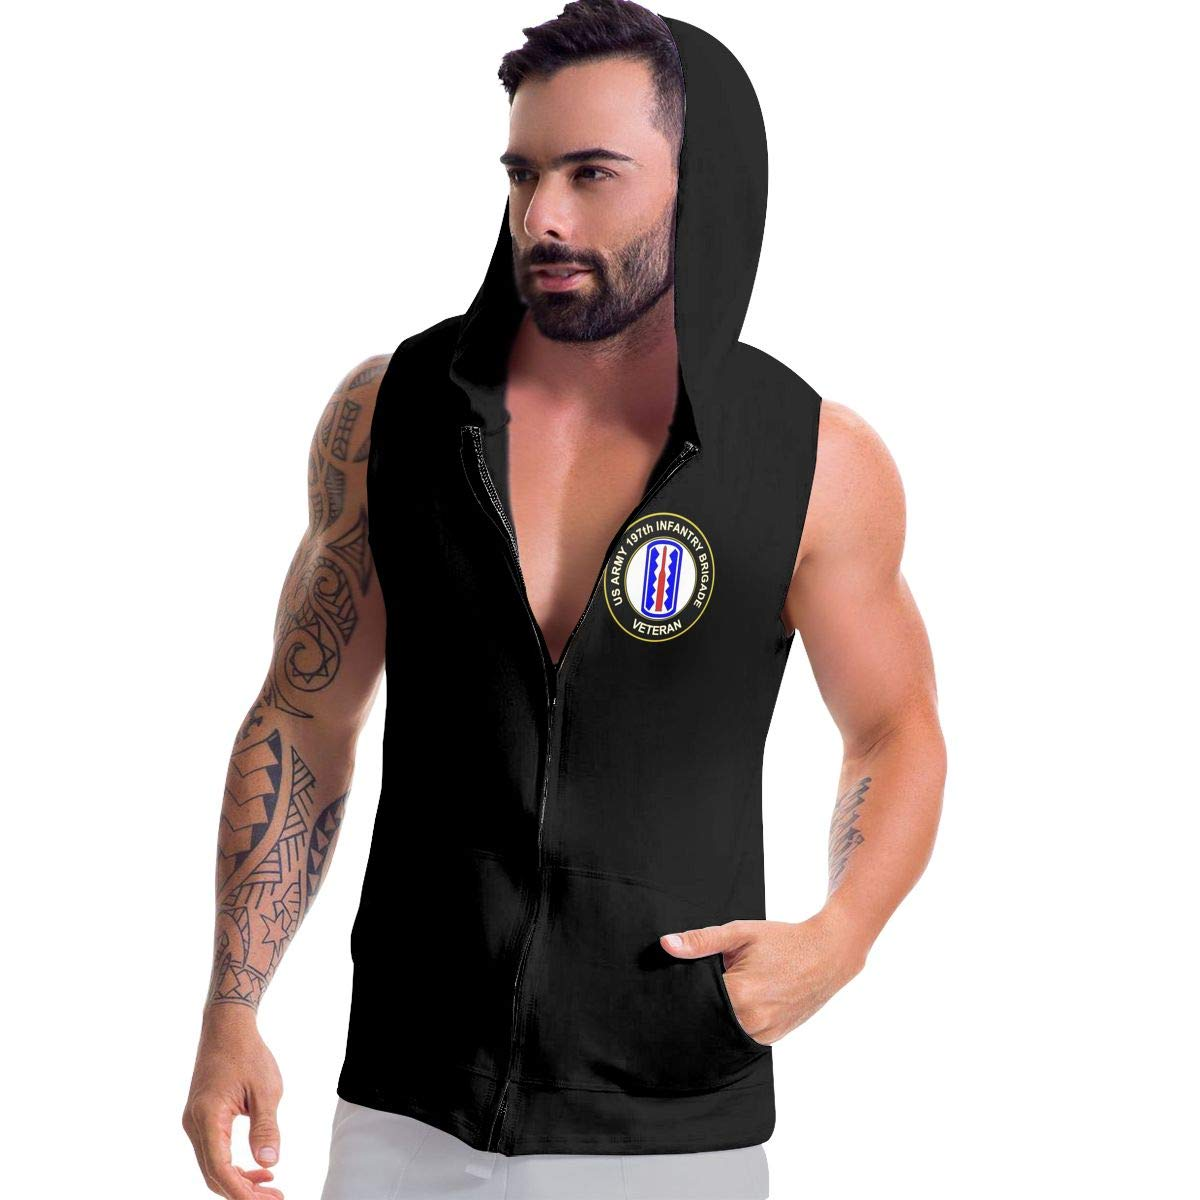 US Army 197th Infantry Brigade Veteran Mens Fashion Sleeveless Zip-up Hoodie Black with Pocket